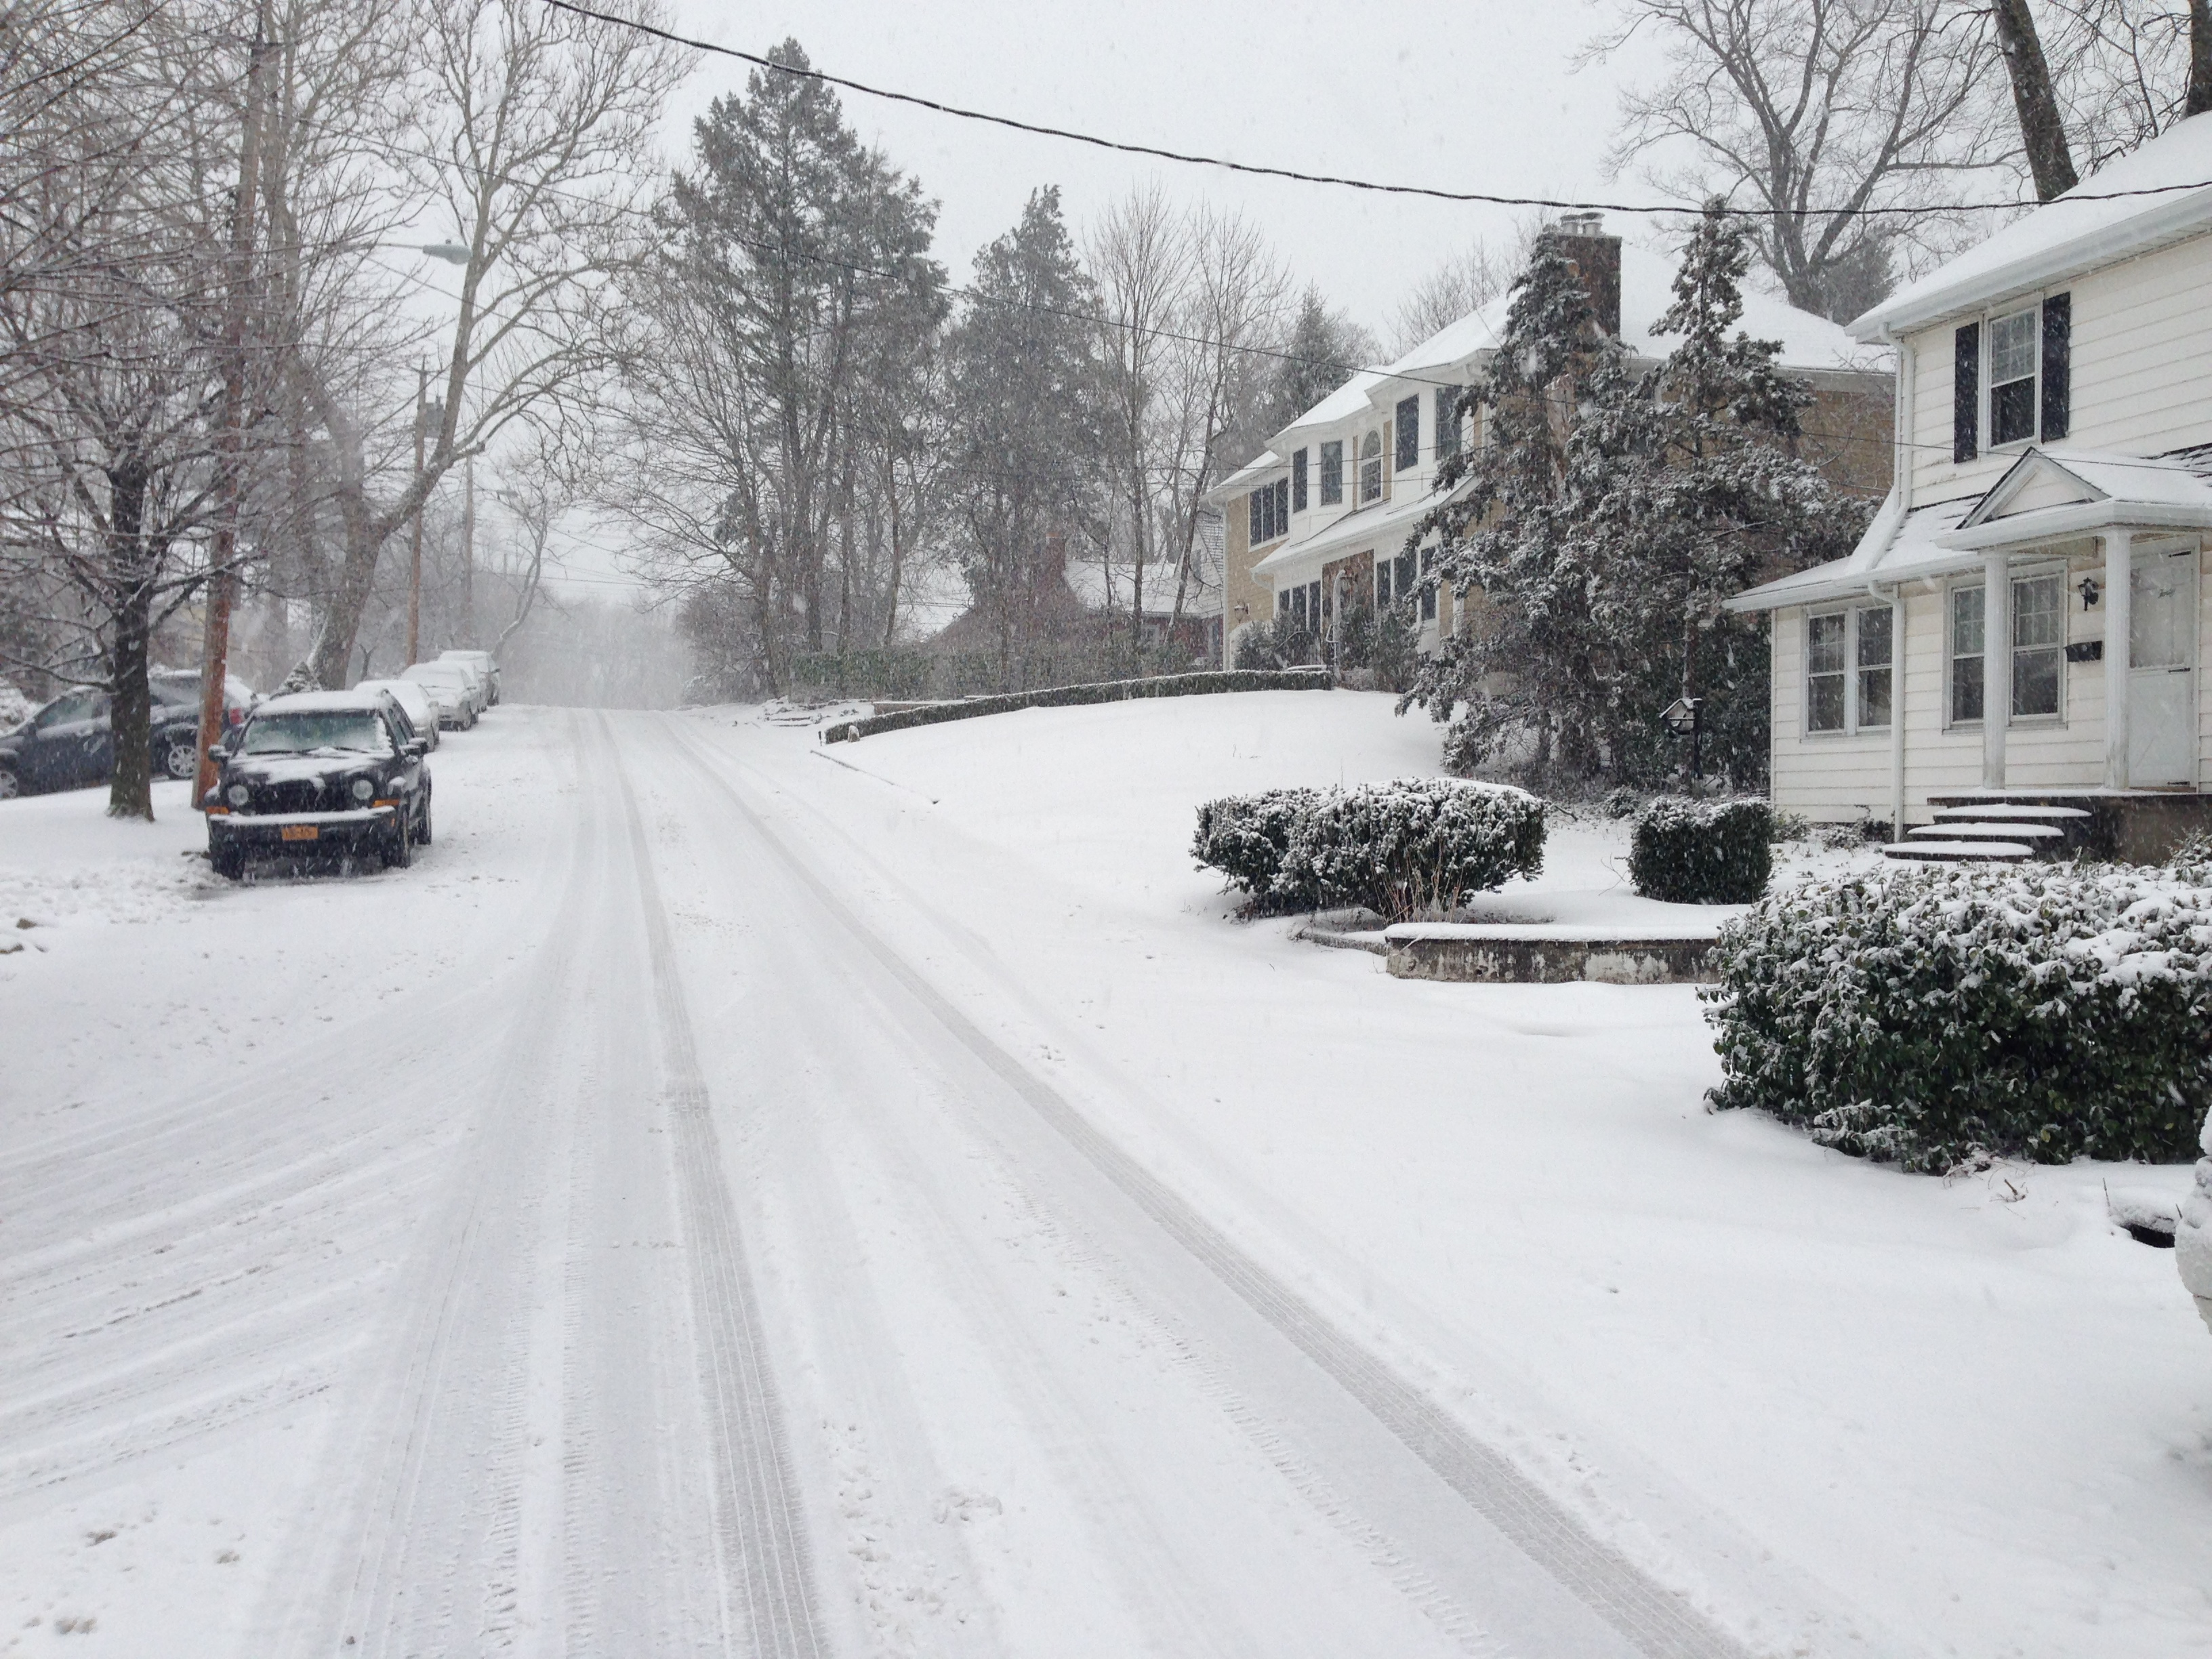 The snow is beginning to cause roads to get messy in Tuckahoe.